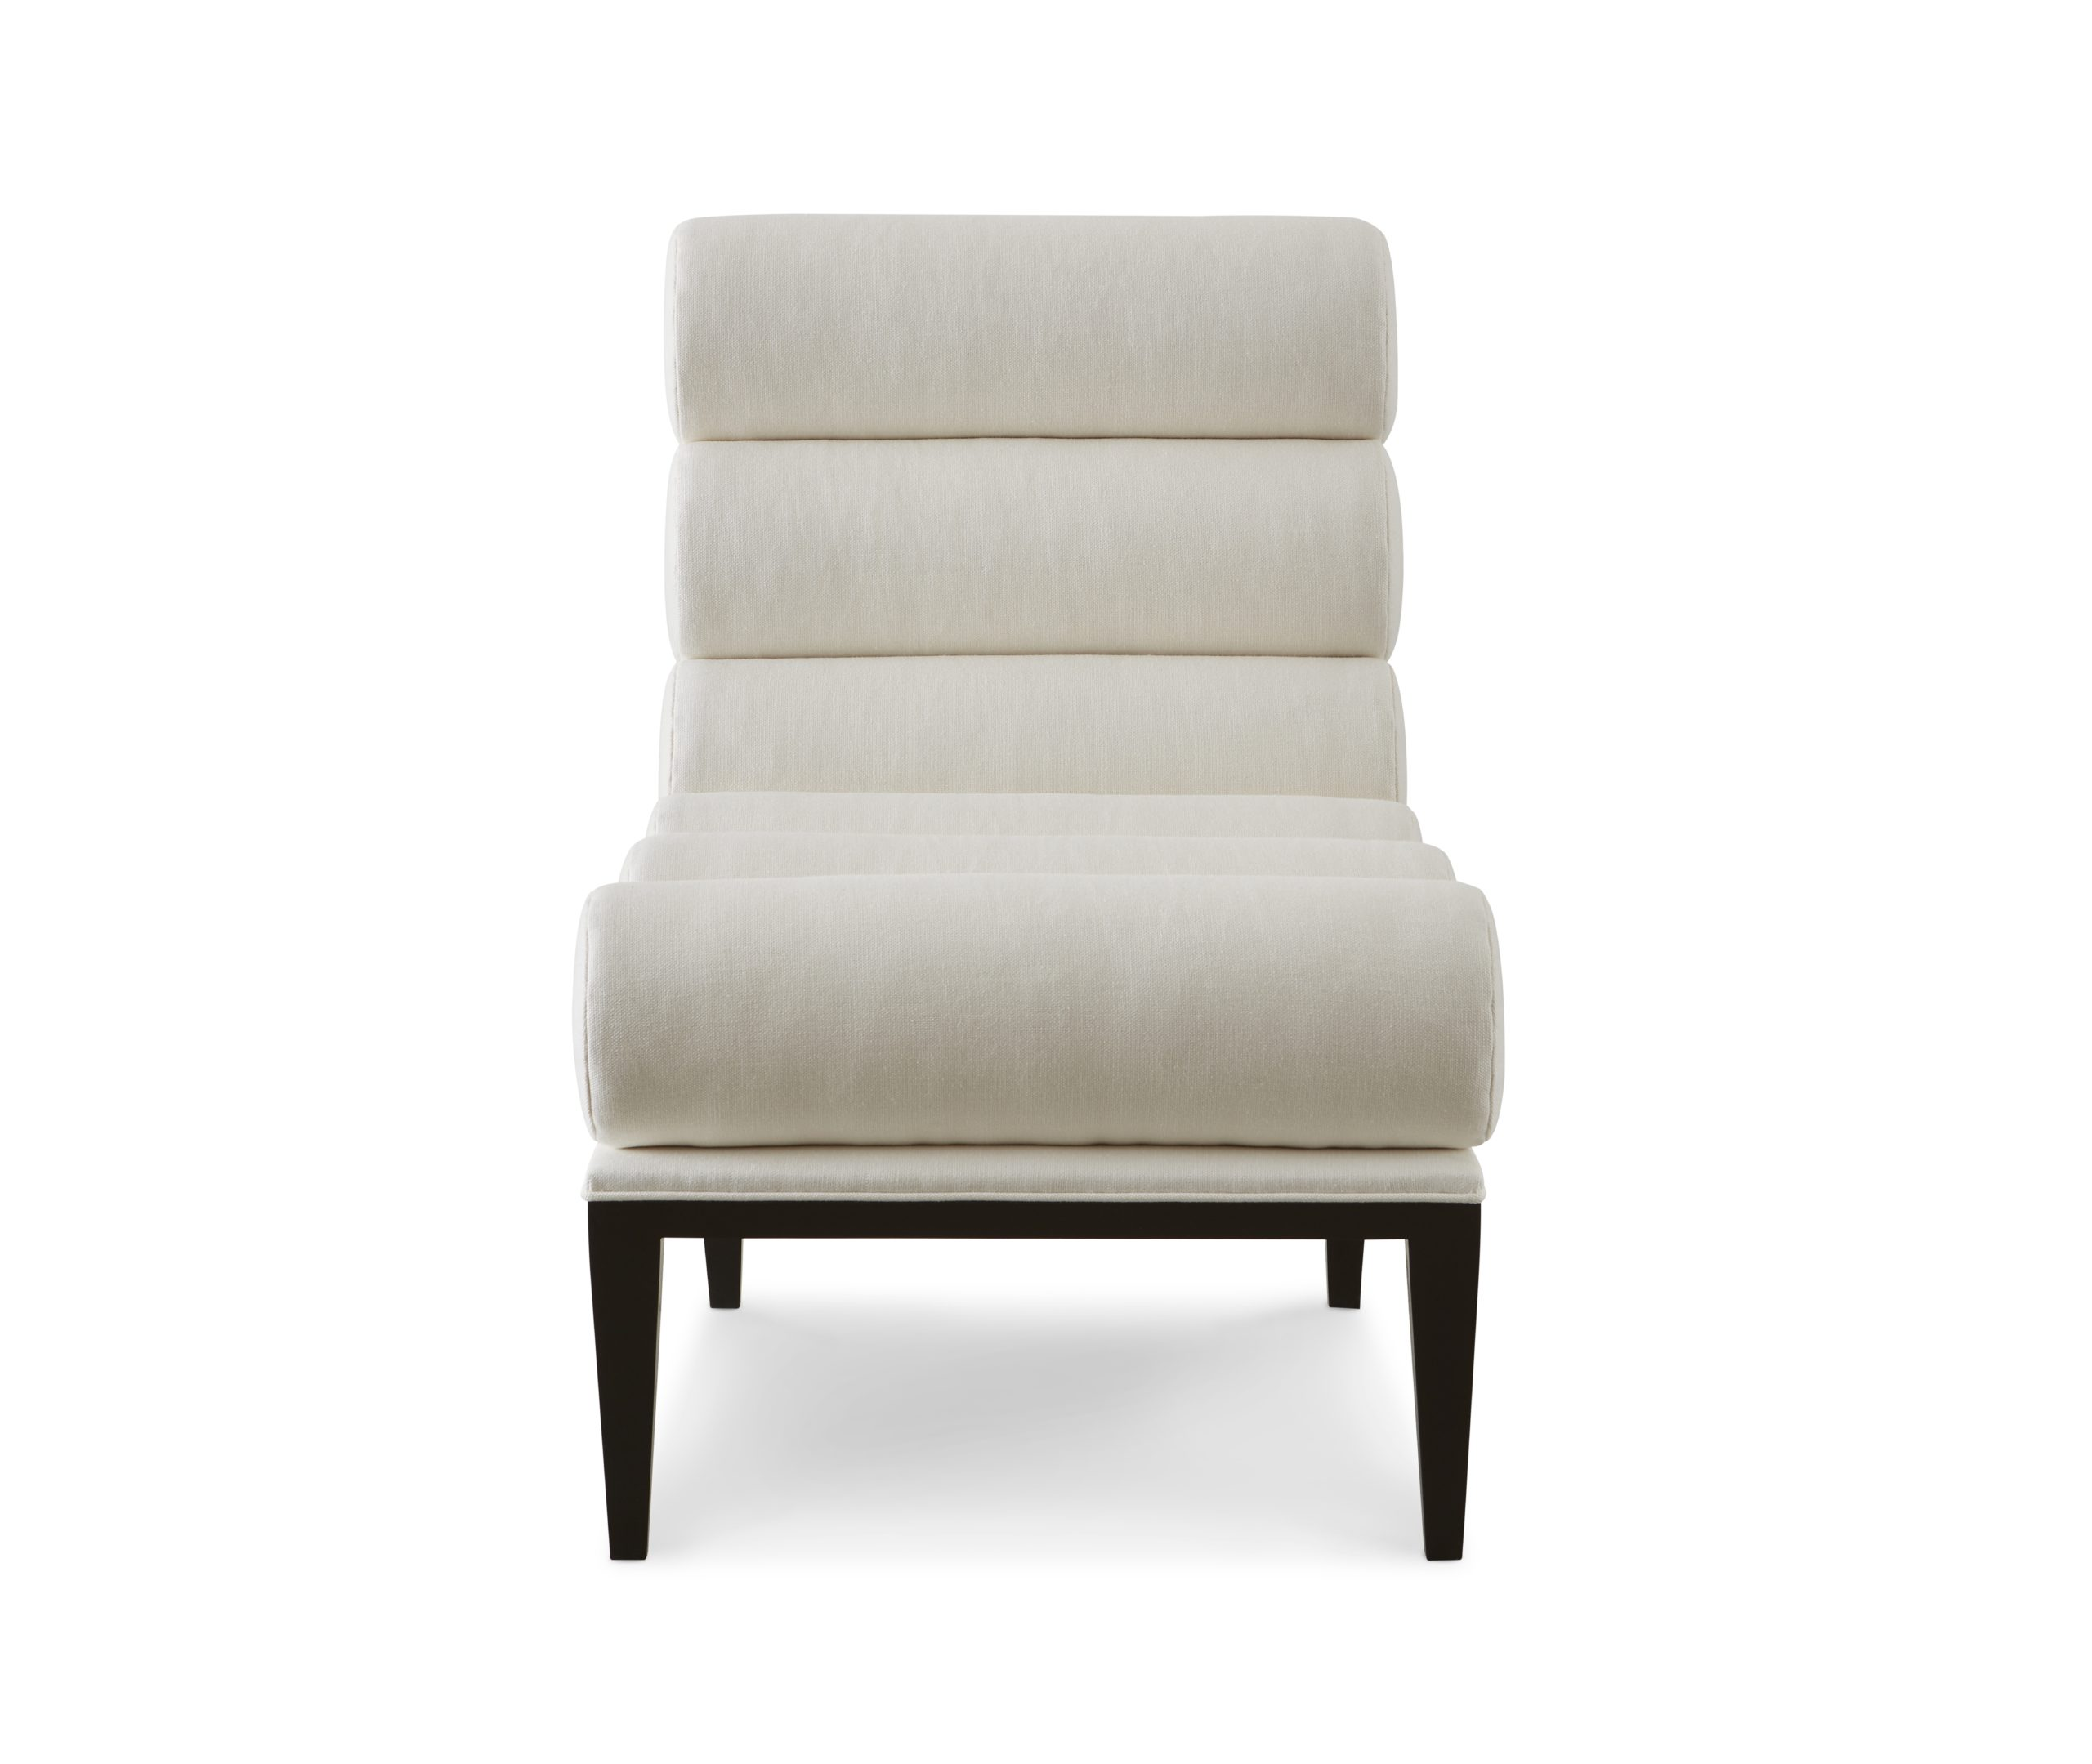 Baker_products_WNWN_arlo_lounge_chair_BAU3308c_FRONT-scaled-1